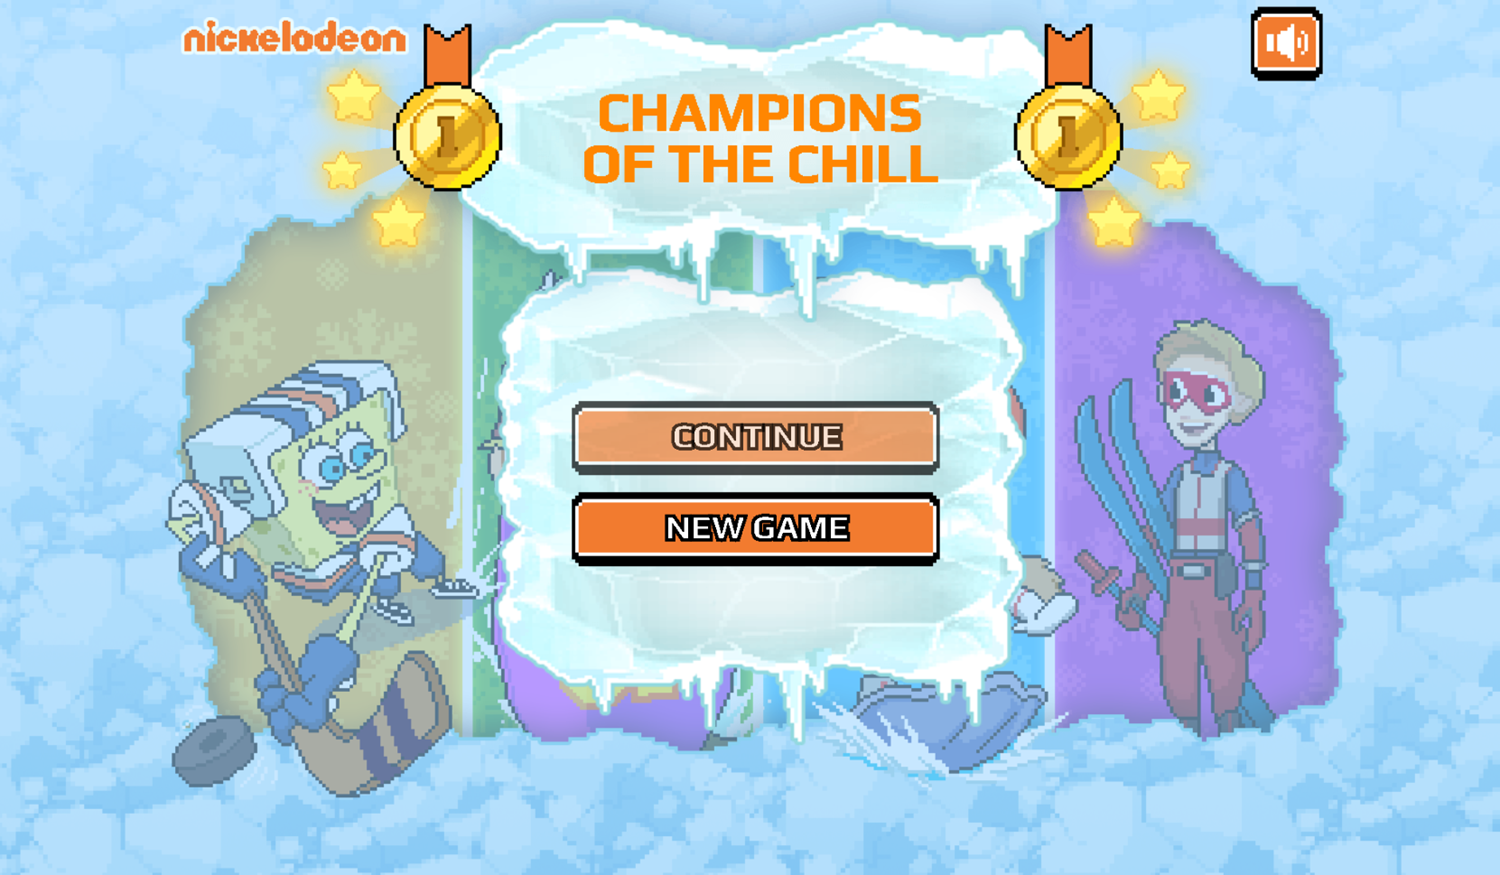 Nick Champions of the Chill 2 New Game Screenshot.